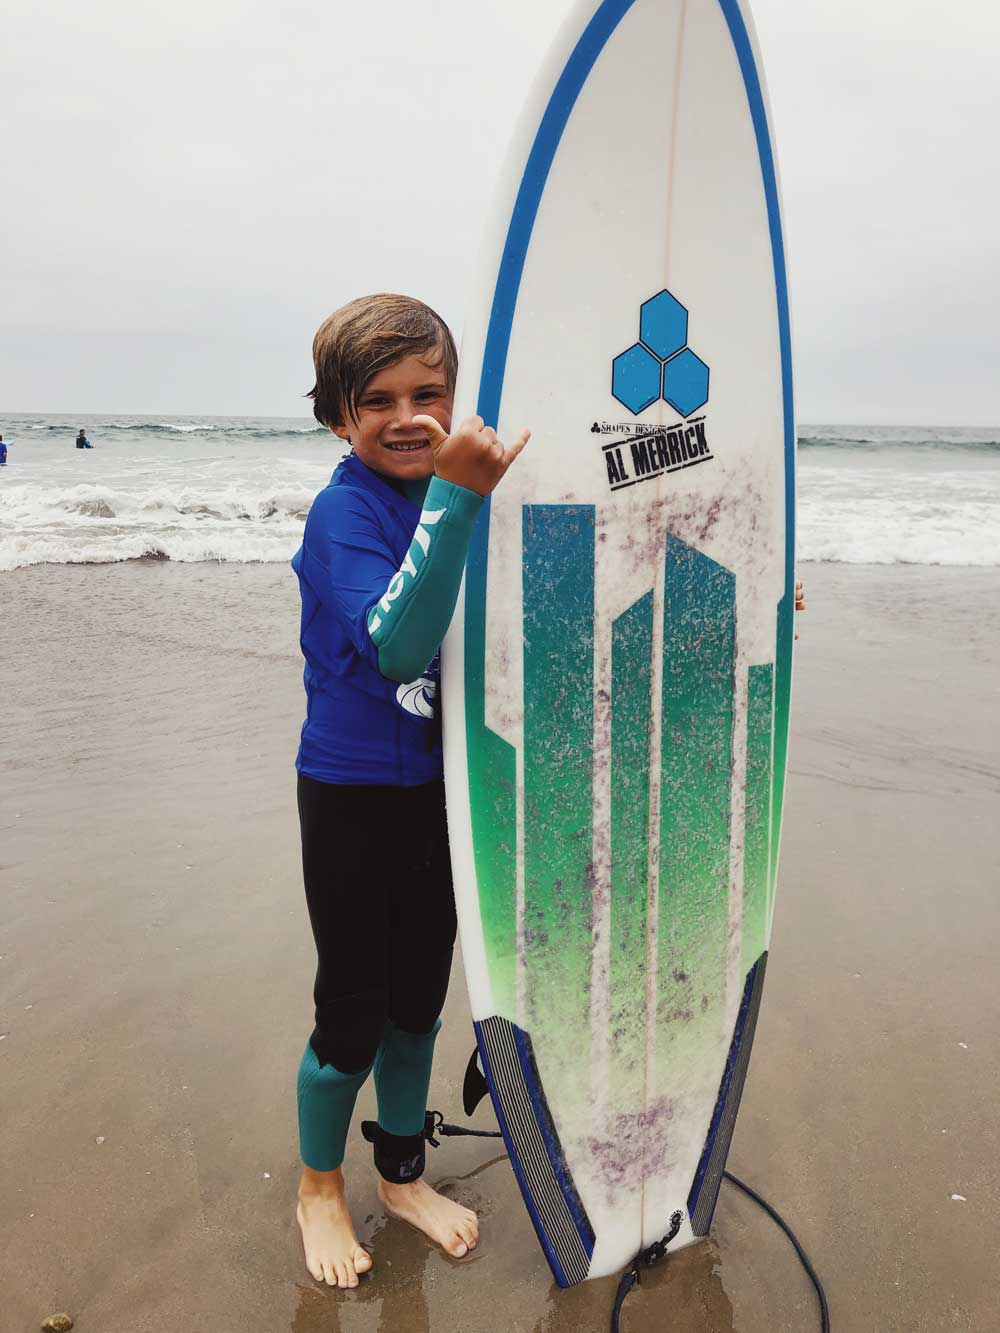 Grom with surfboard